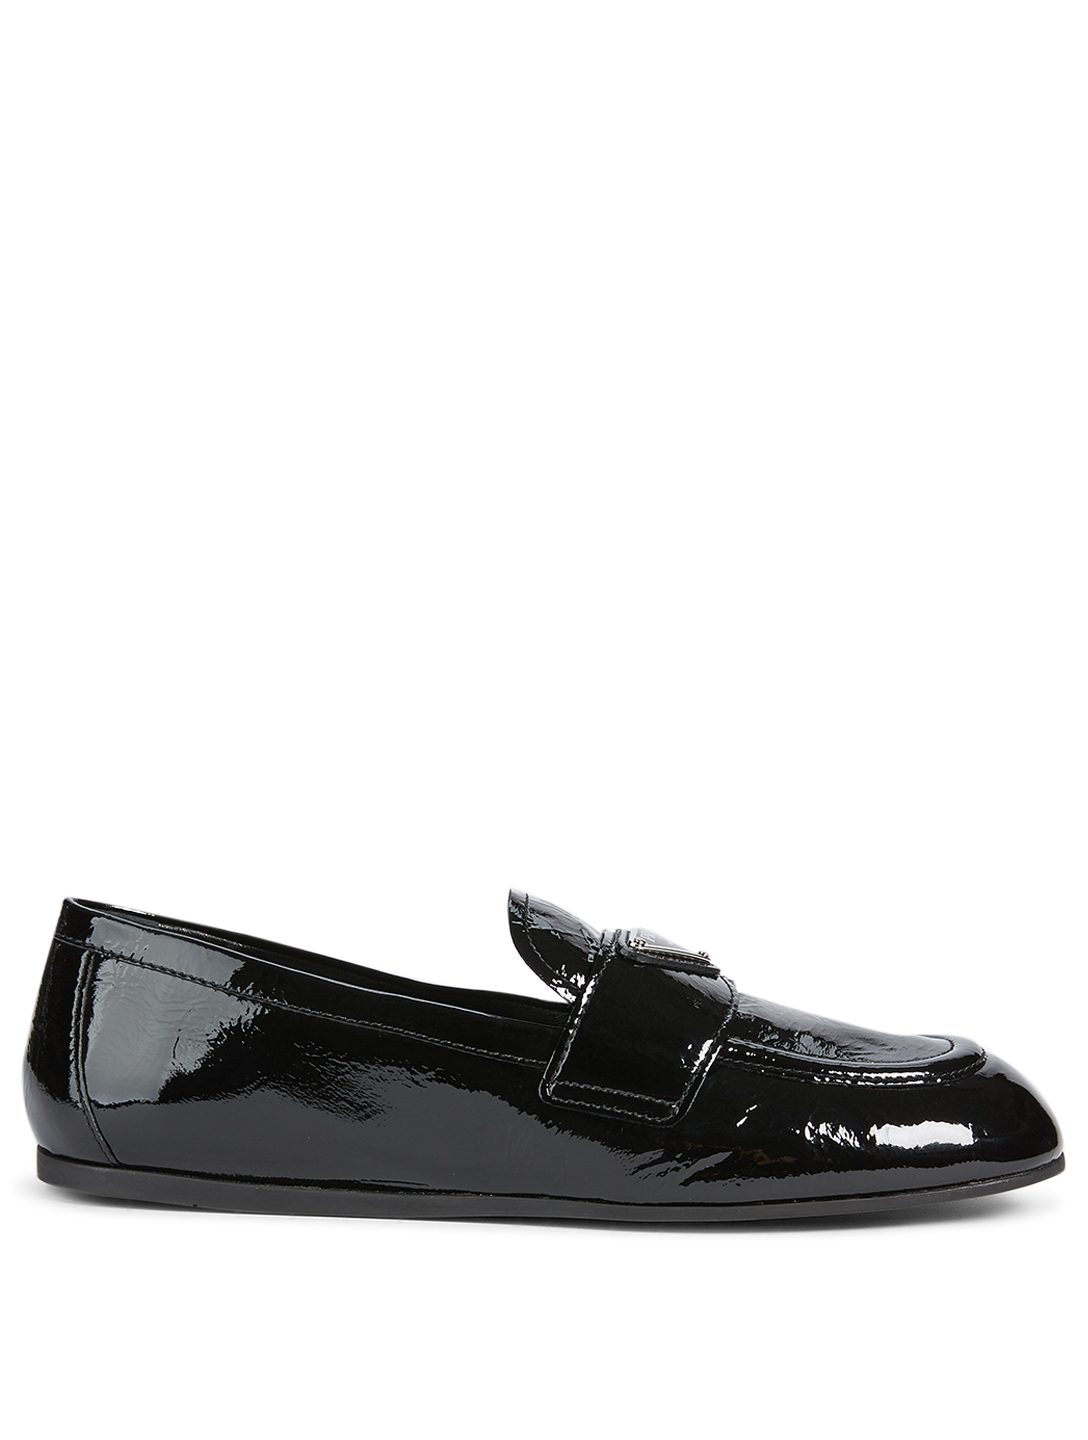 PRADA Patent Leather Logo Loafers Women's Black